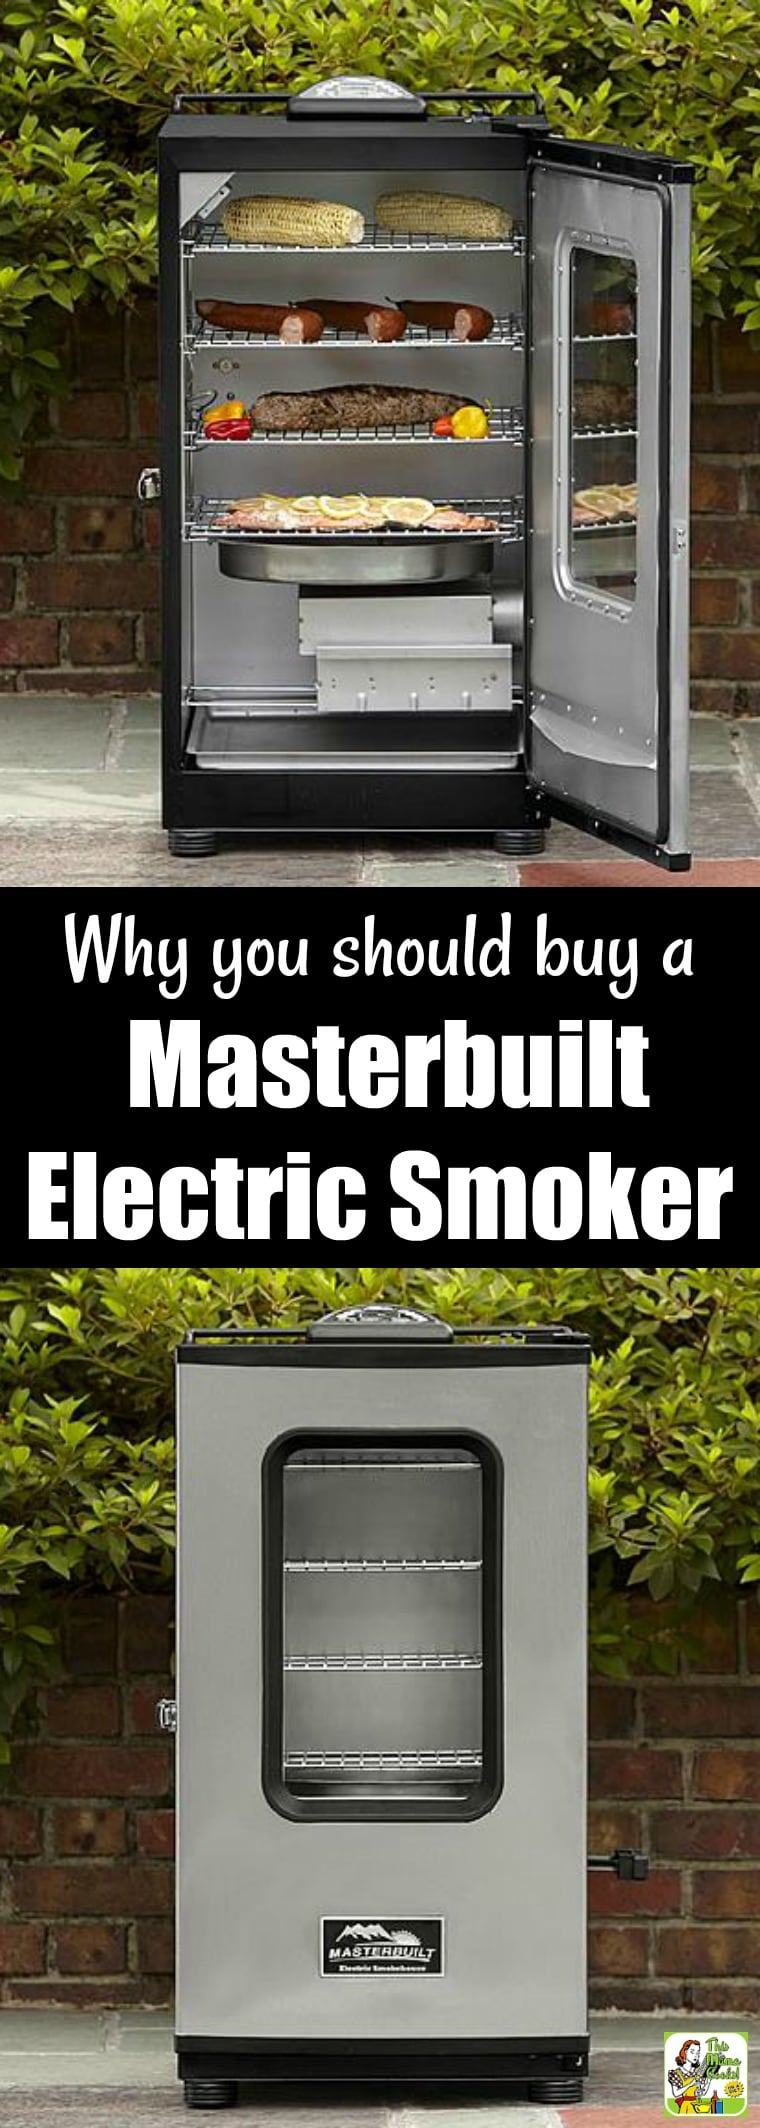 Why you should buy a Masterbuilt Electric Smoker. If you\'re looking the best electric smoker out there consider a Masterbuilt Electric Smoker. #grilling #grillrecipes #grillingrecipes #bbq #barbecue #grillingtips